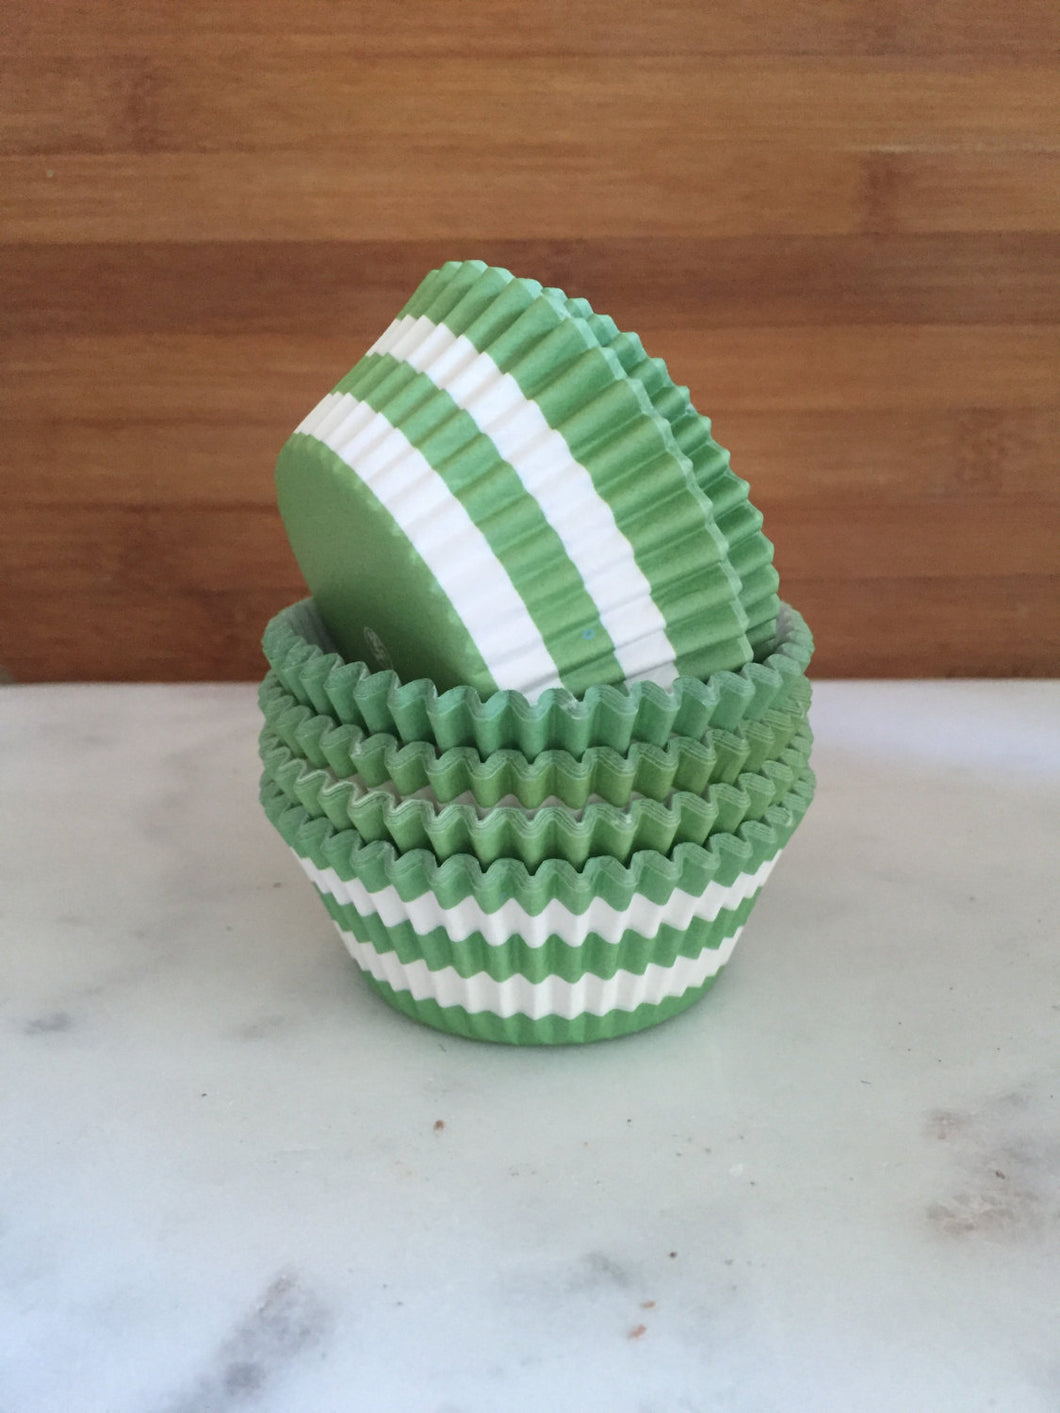 Rugby Stripe Green Cupcake Liners, Standard Sized, Stay Bright Baking Cups (50)